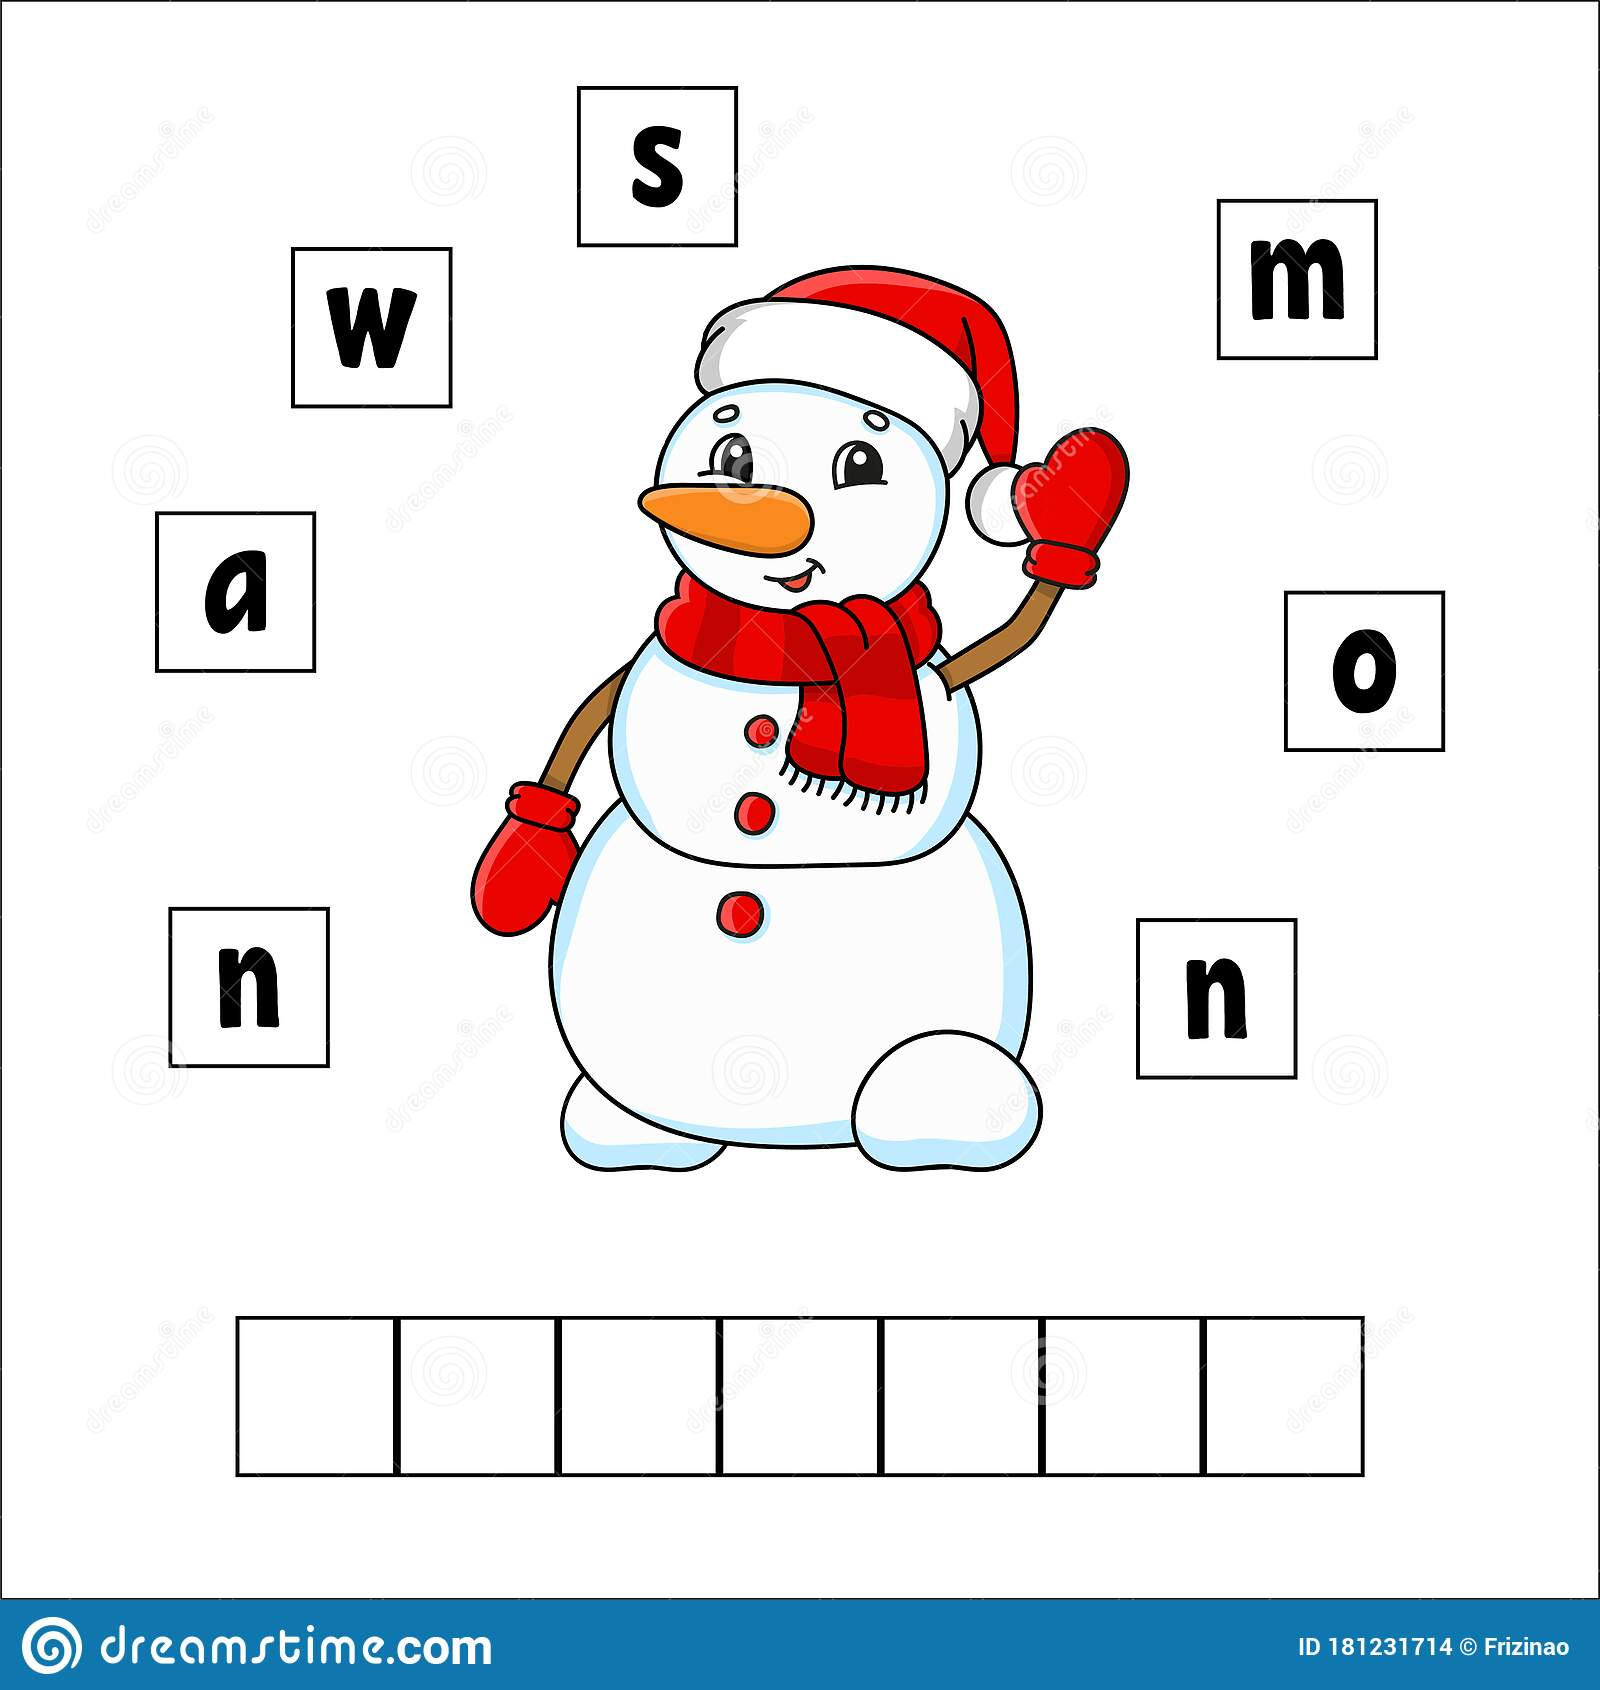 Words Puzzle Snowman Education Developing Worksheet